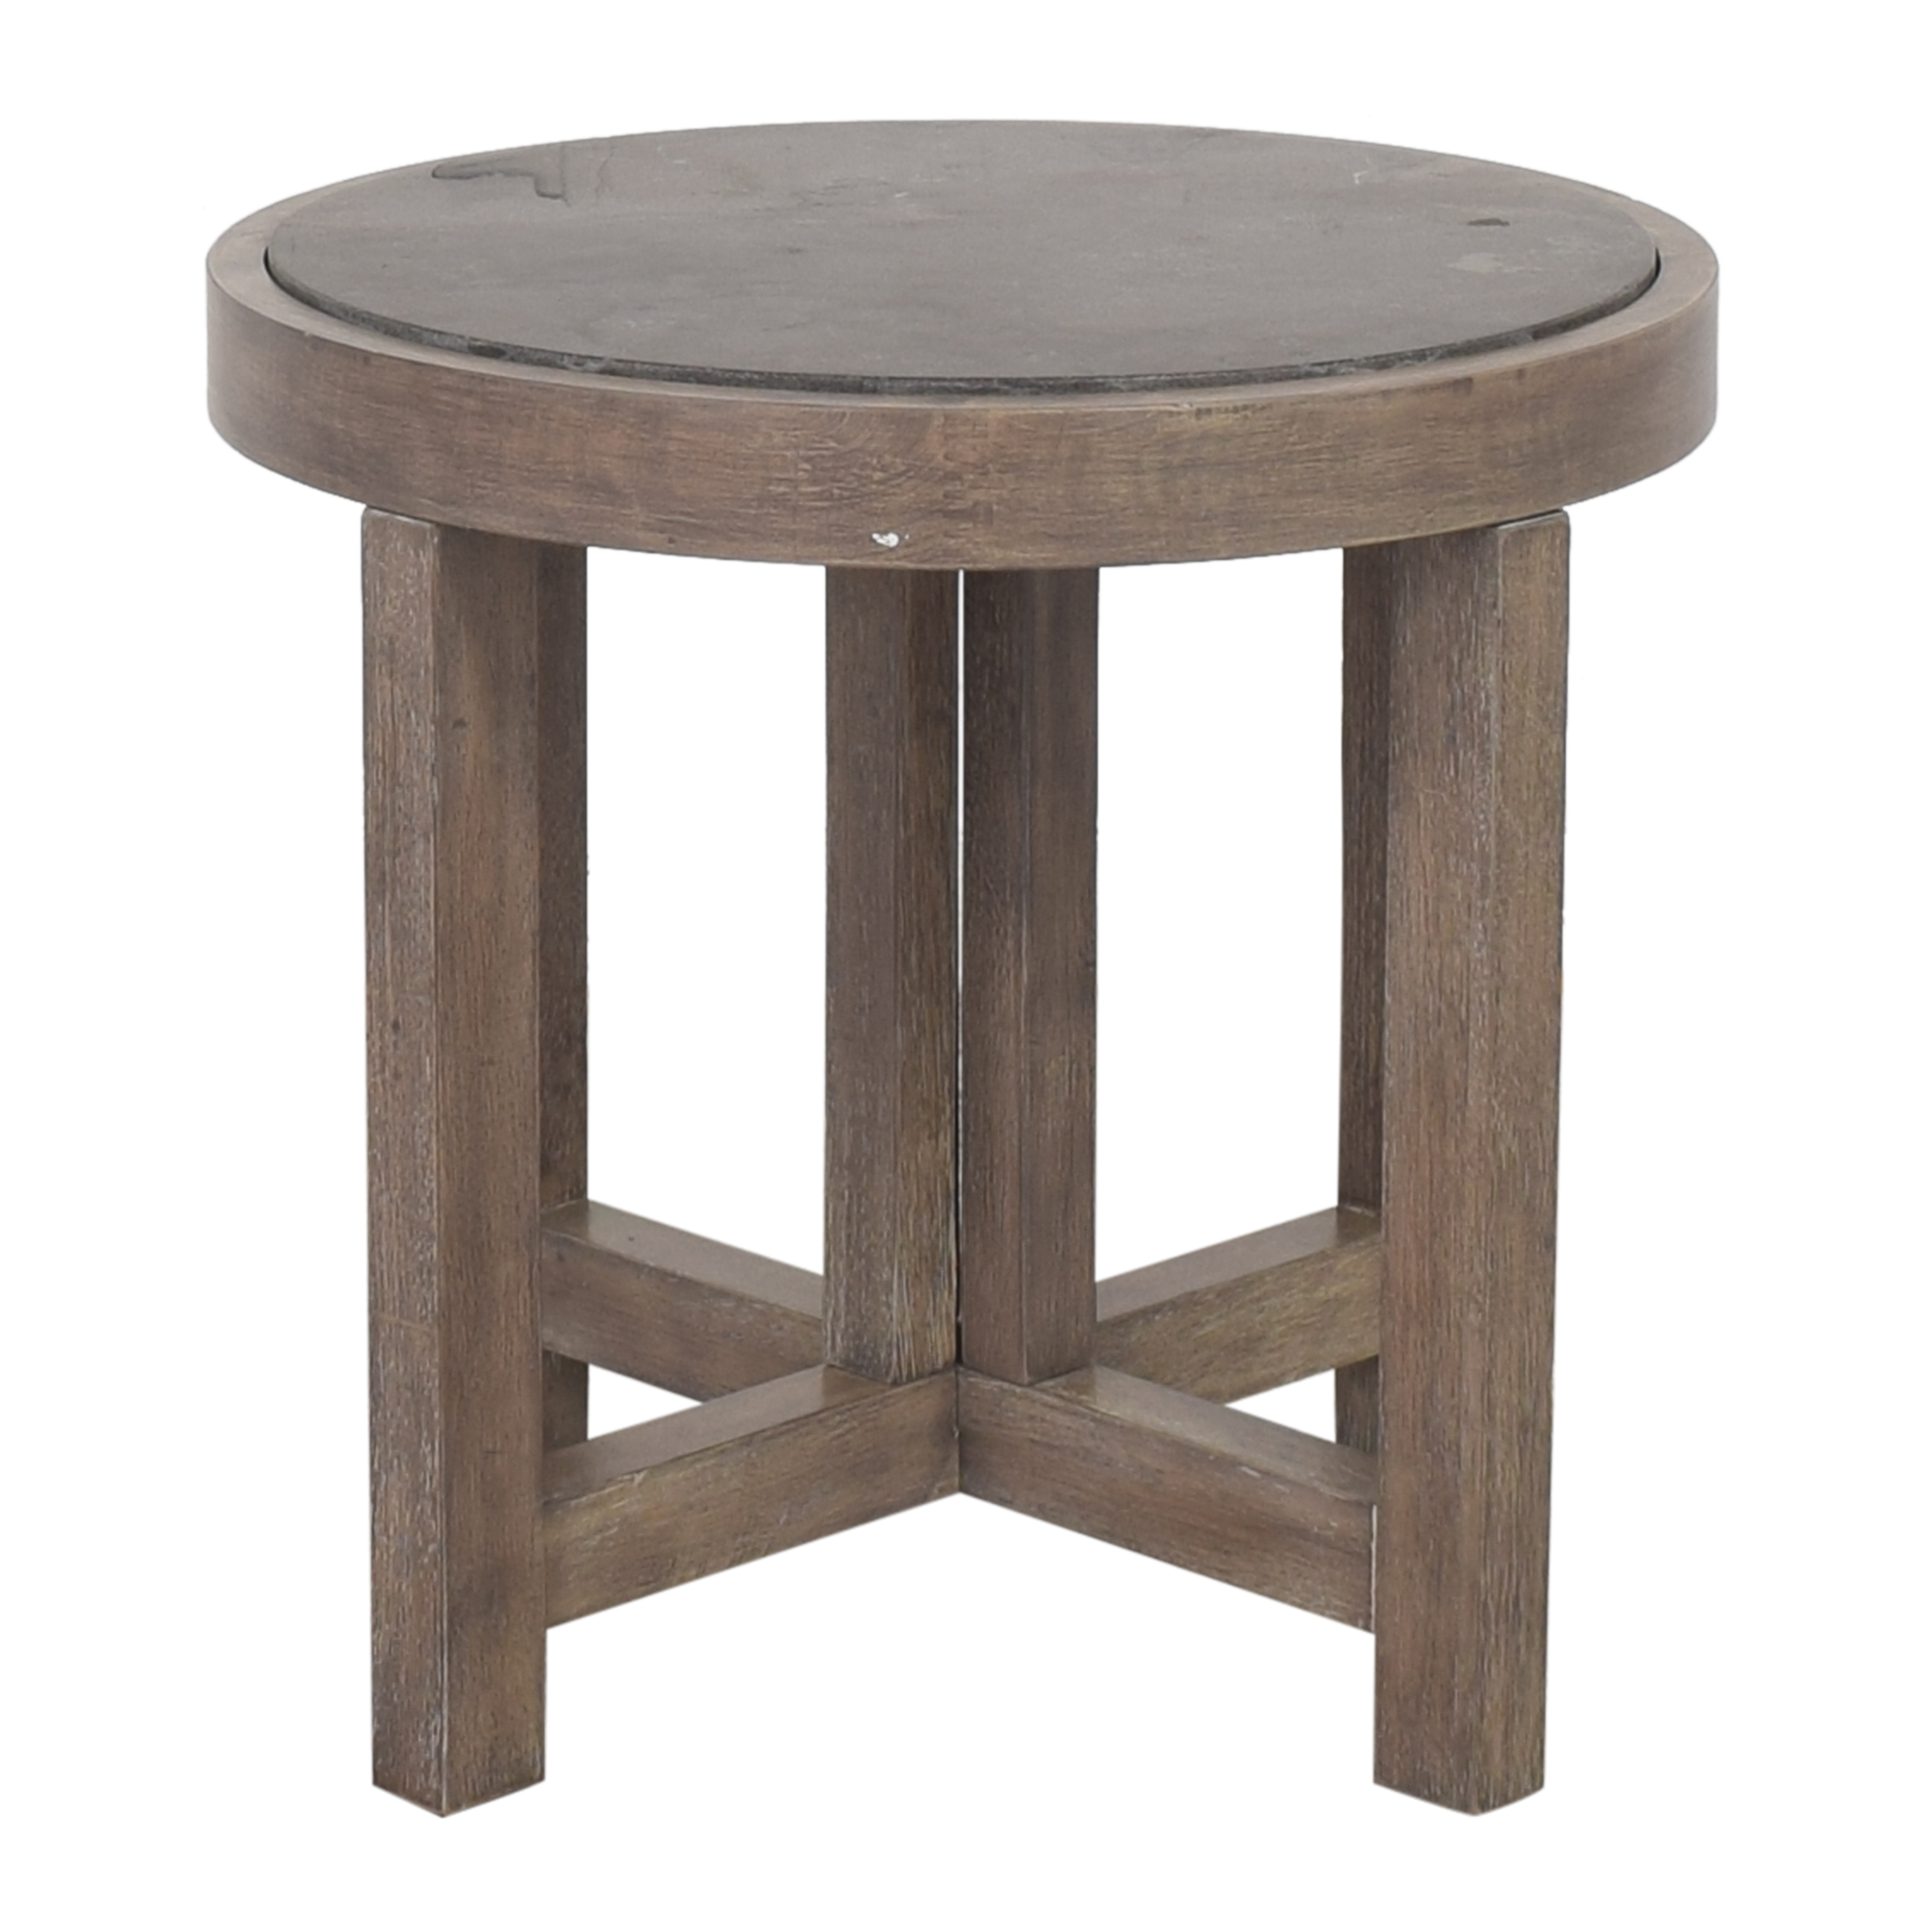 Bassett Furniture Bassett Furniture Compass Round Lamp Table coupon